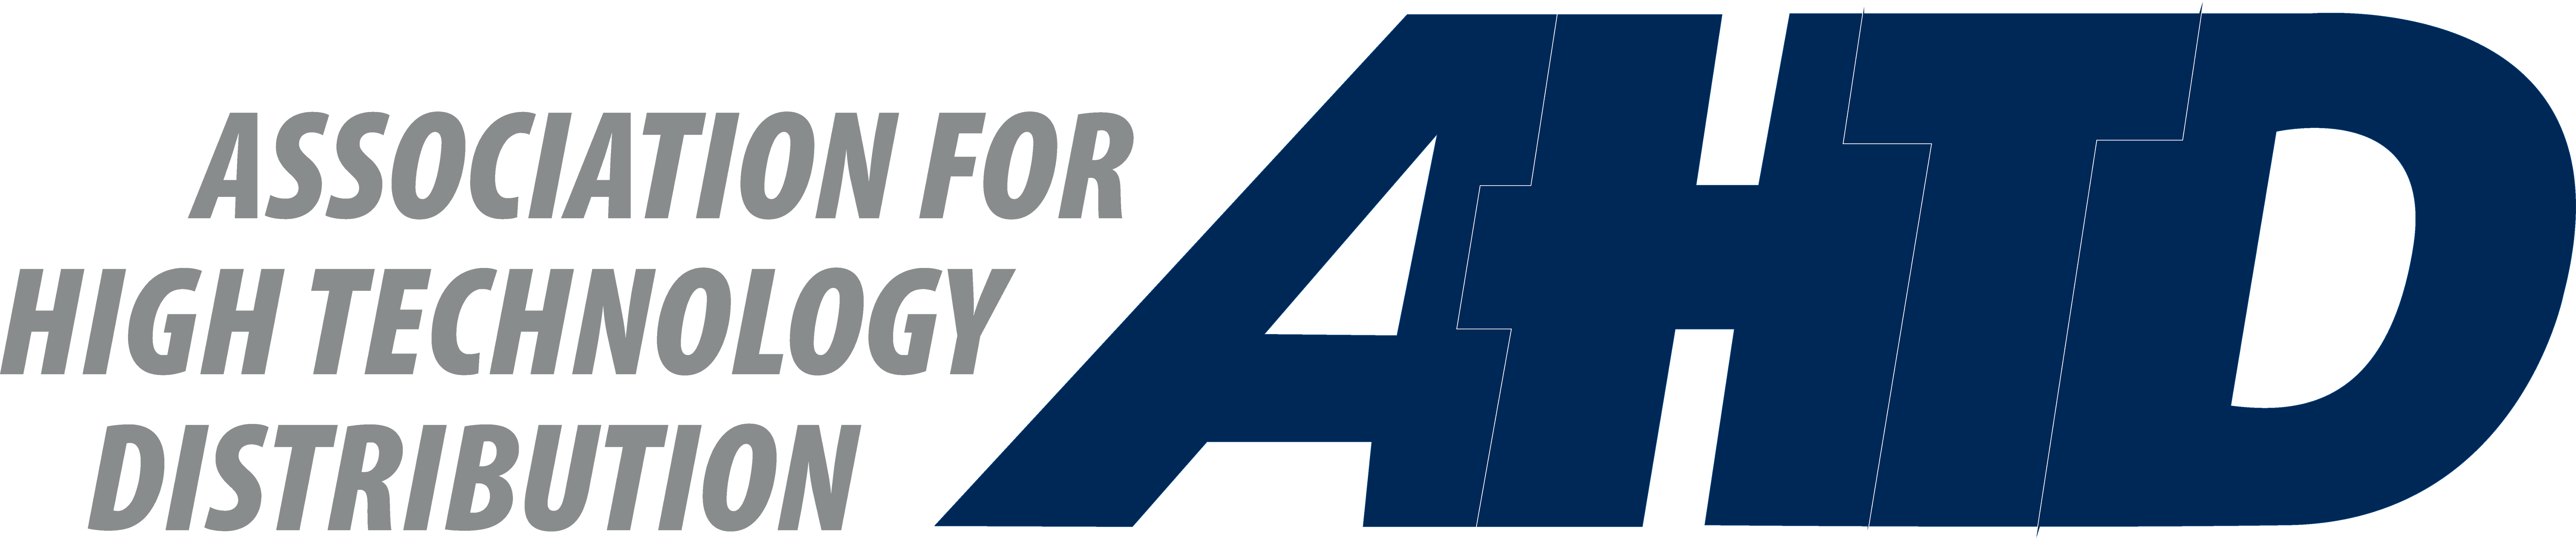 AHTD_logo_tagline_clear_background